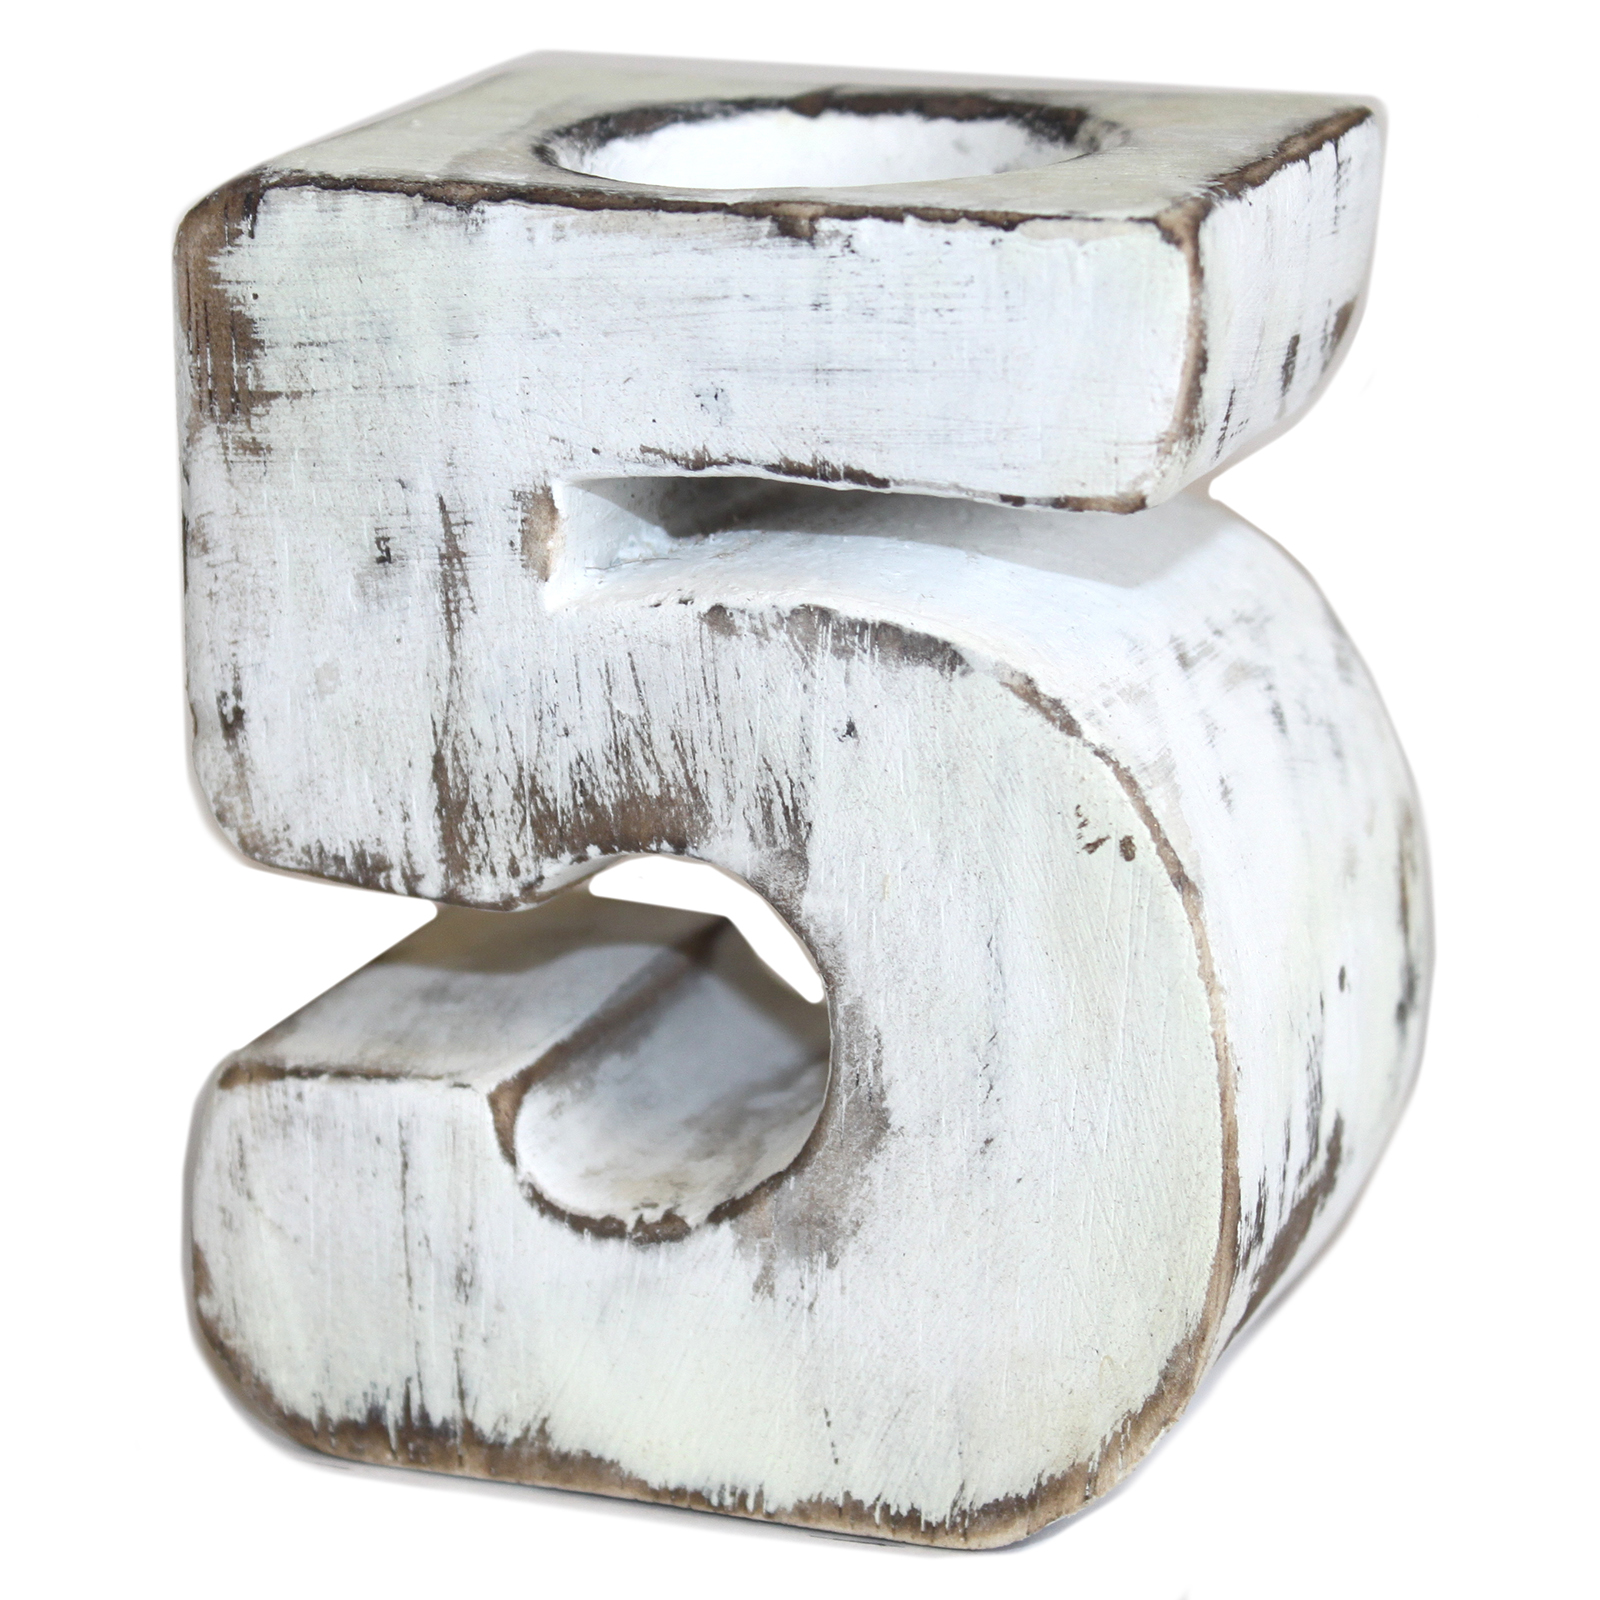 Wooden Birthday Number Candle Holder - No. 5